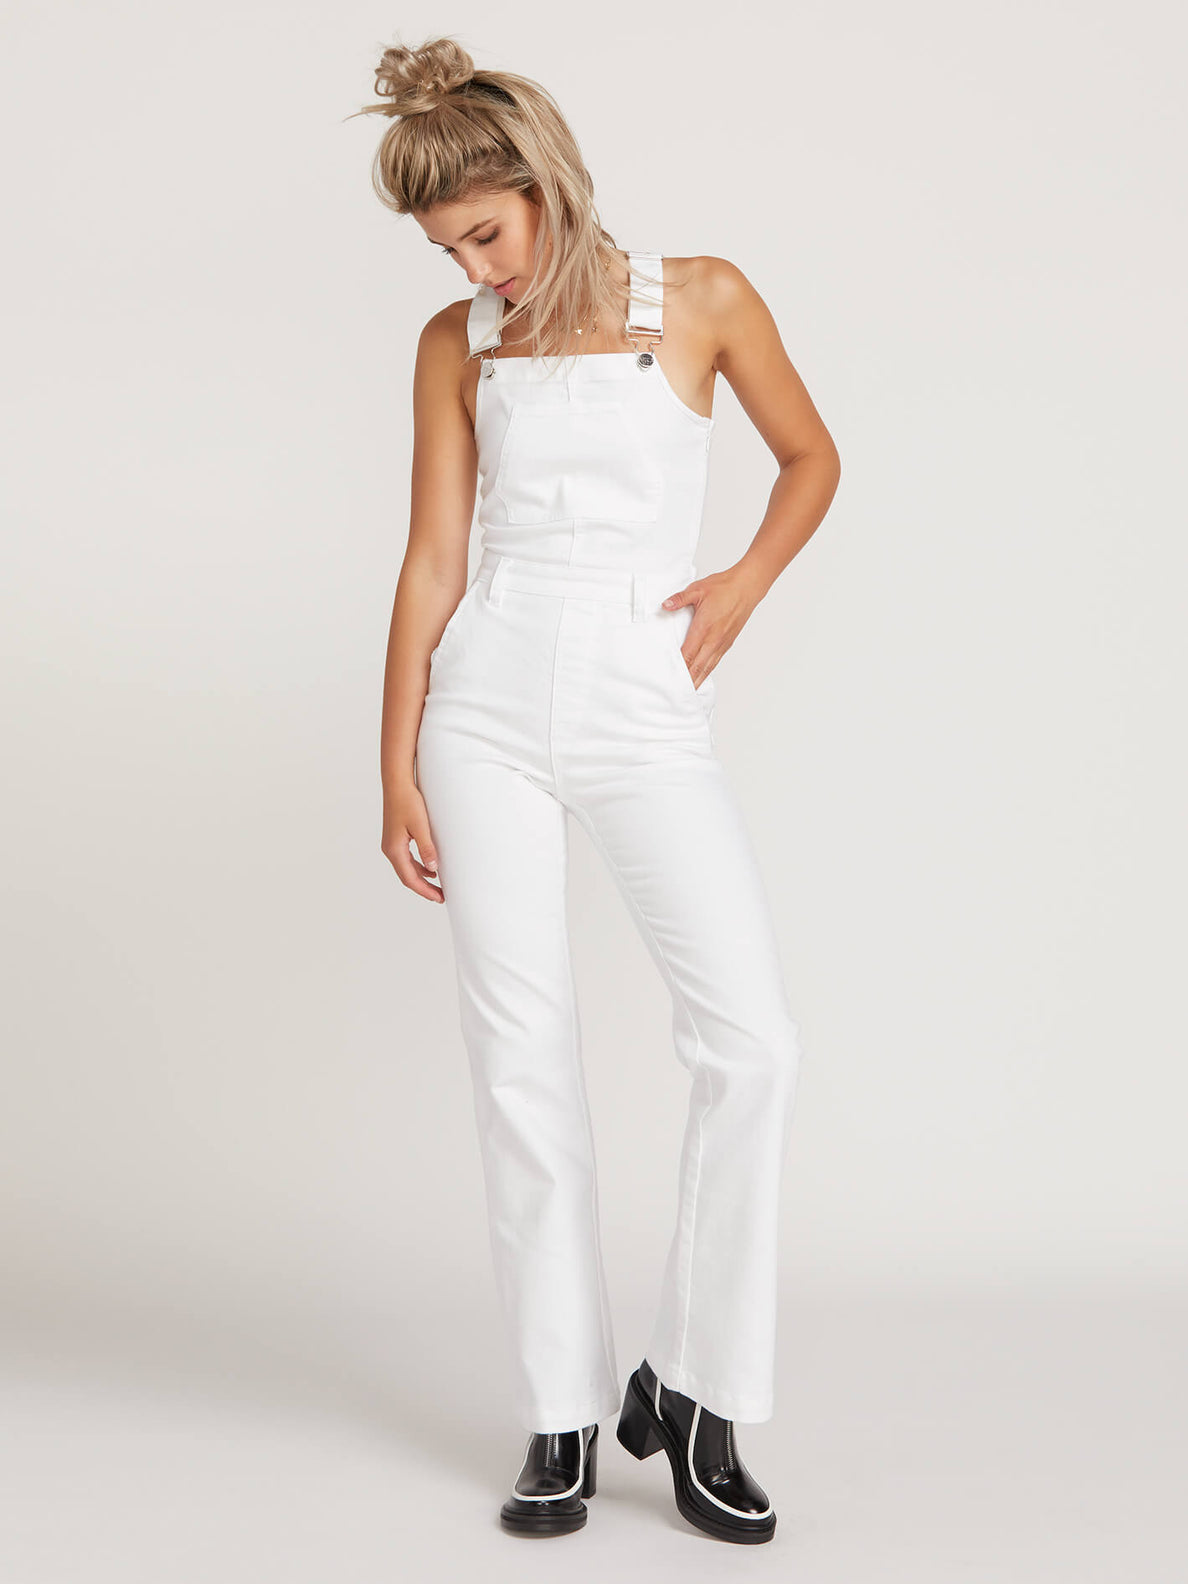 Gmj Overall In White, Front View